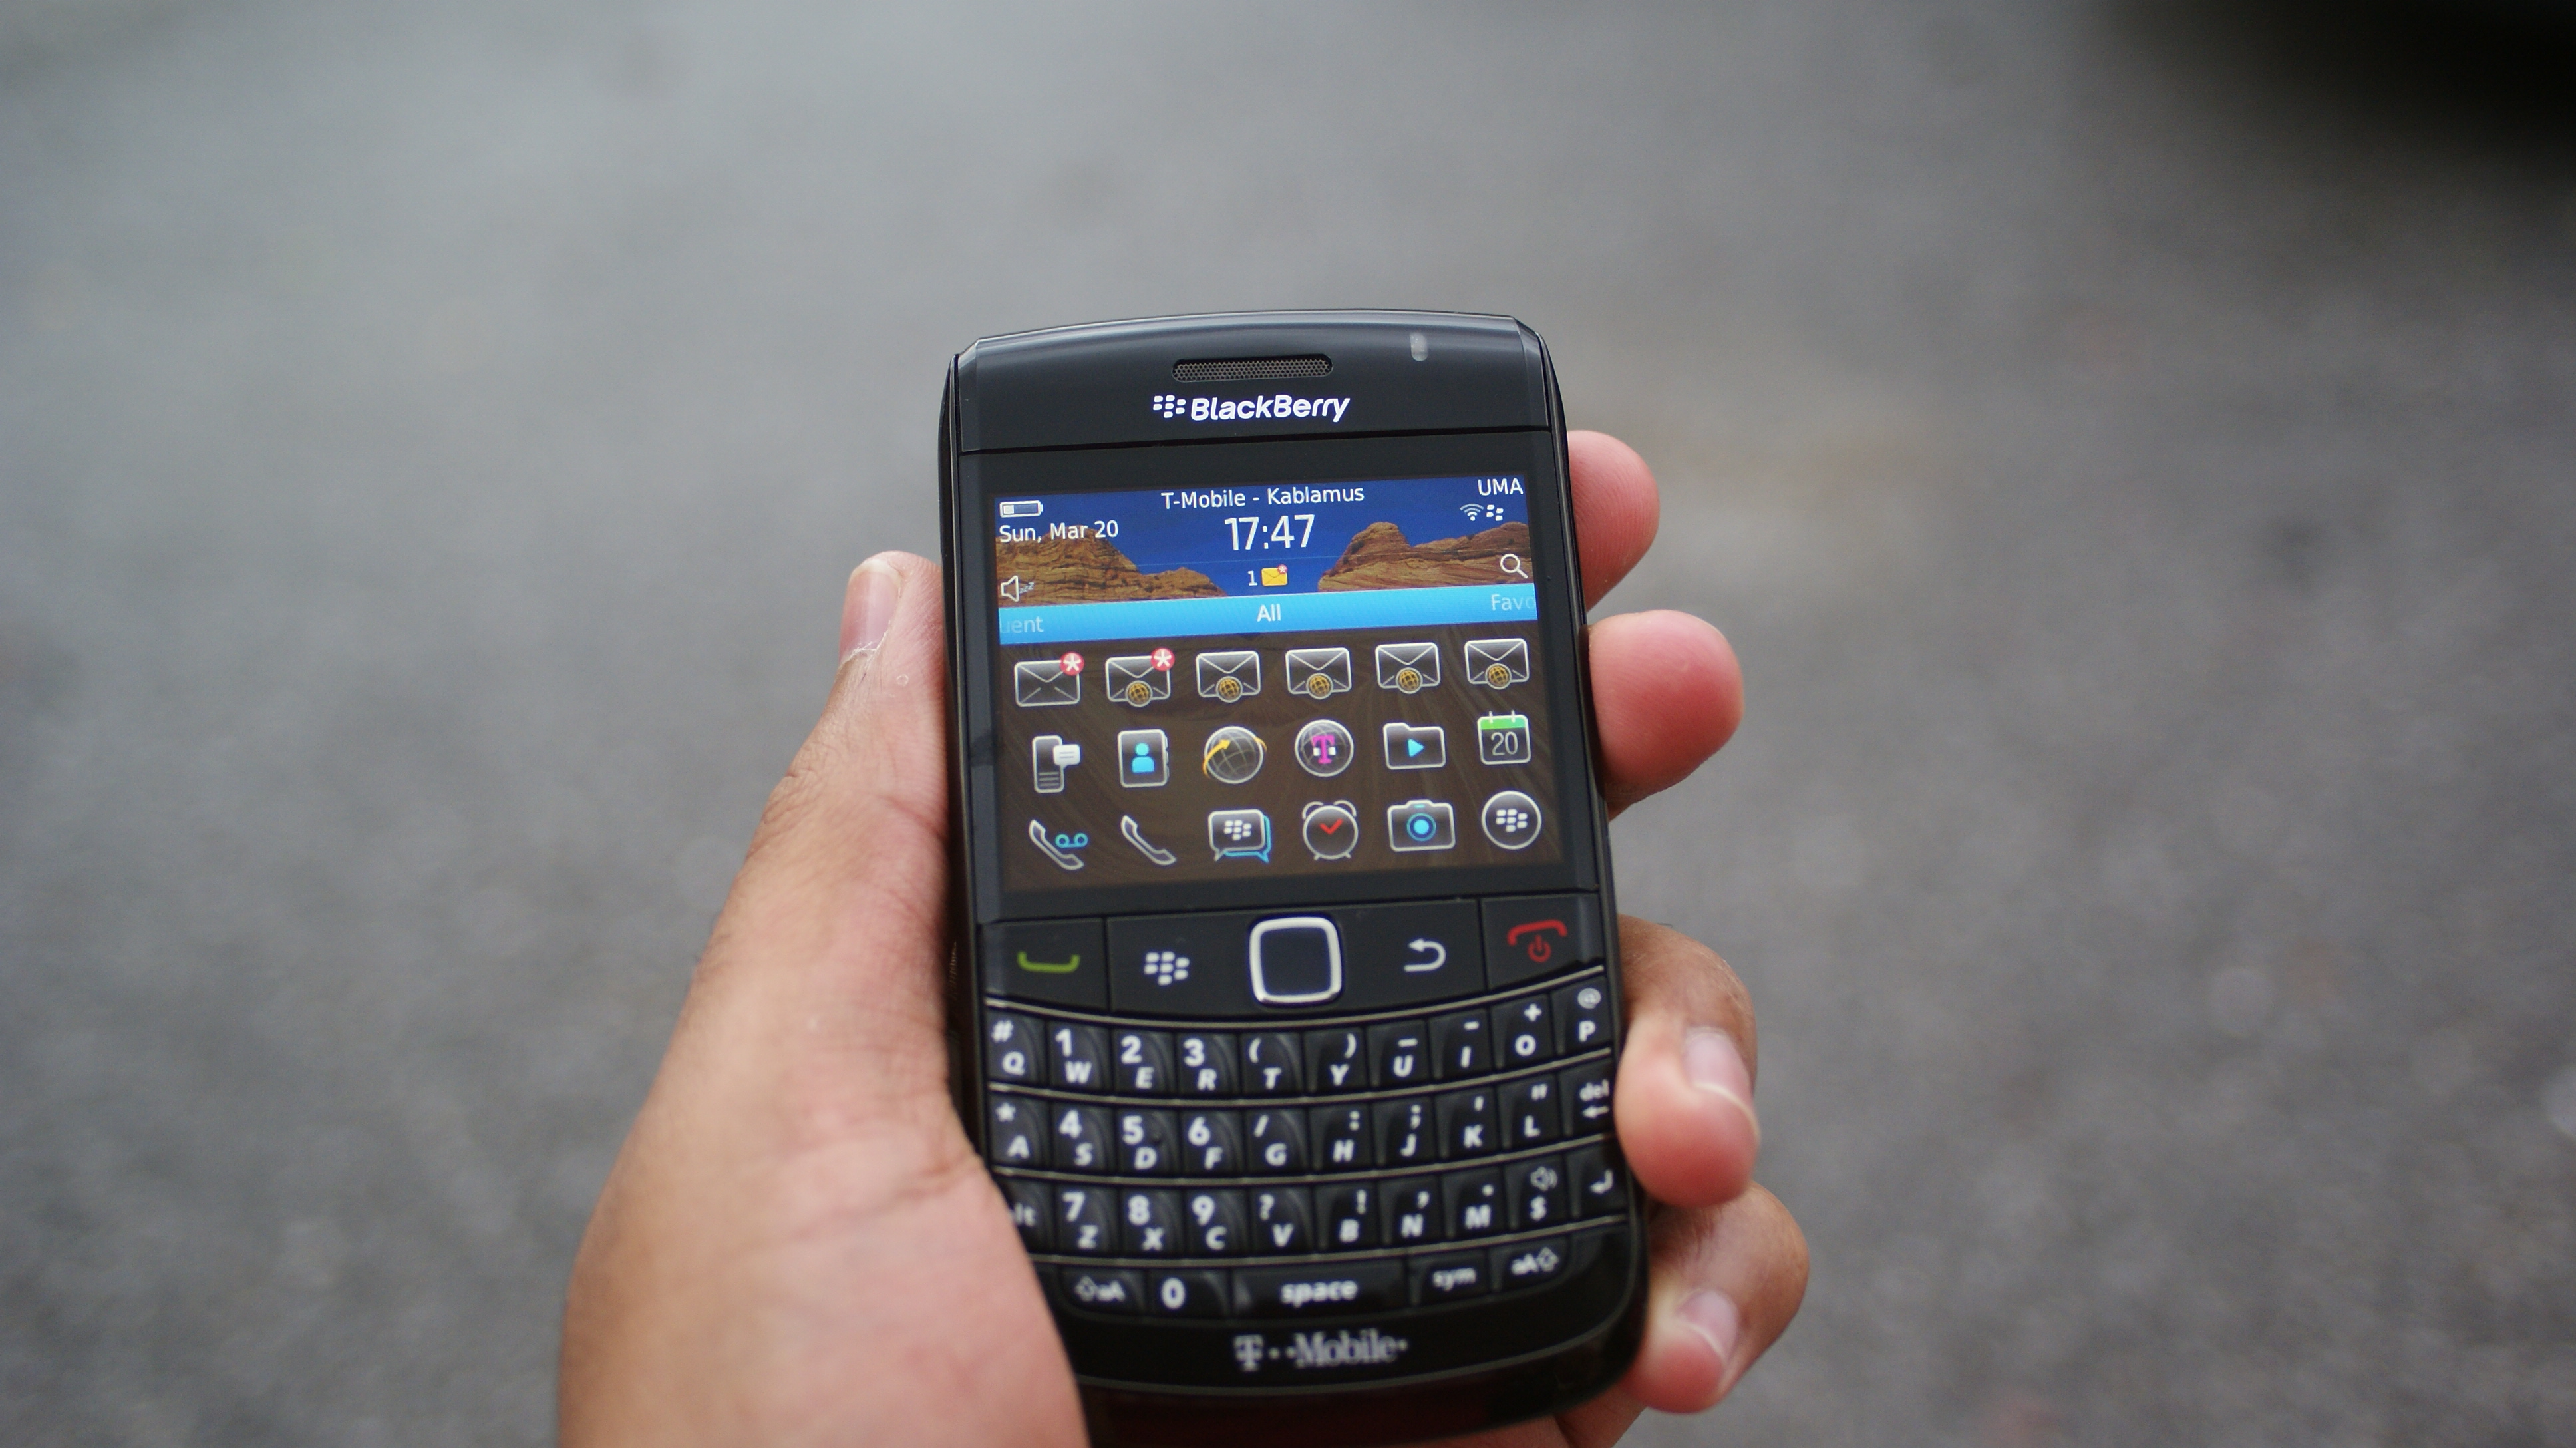 Conclusion: Short, not Sweet - BlackBerry Bold 9780: Not So Bold